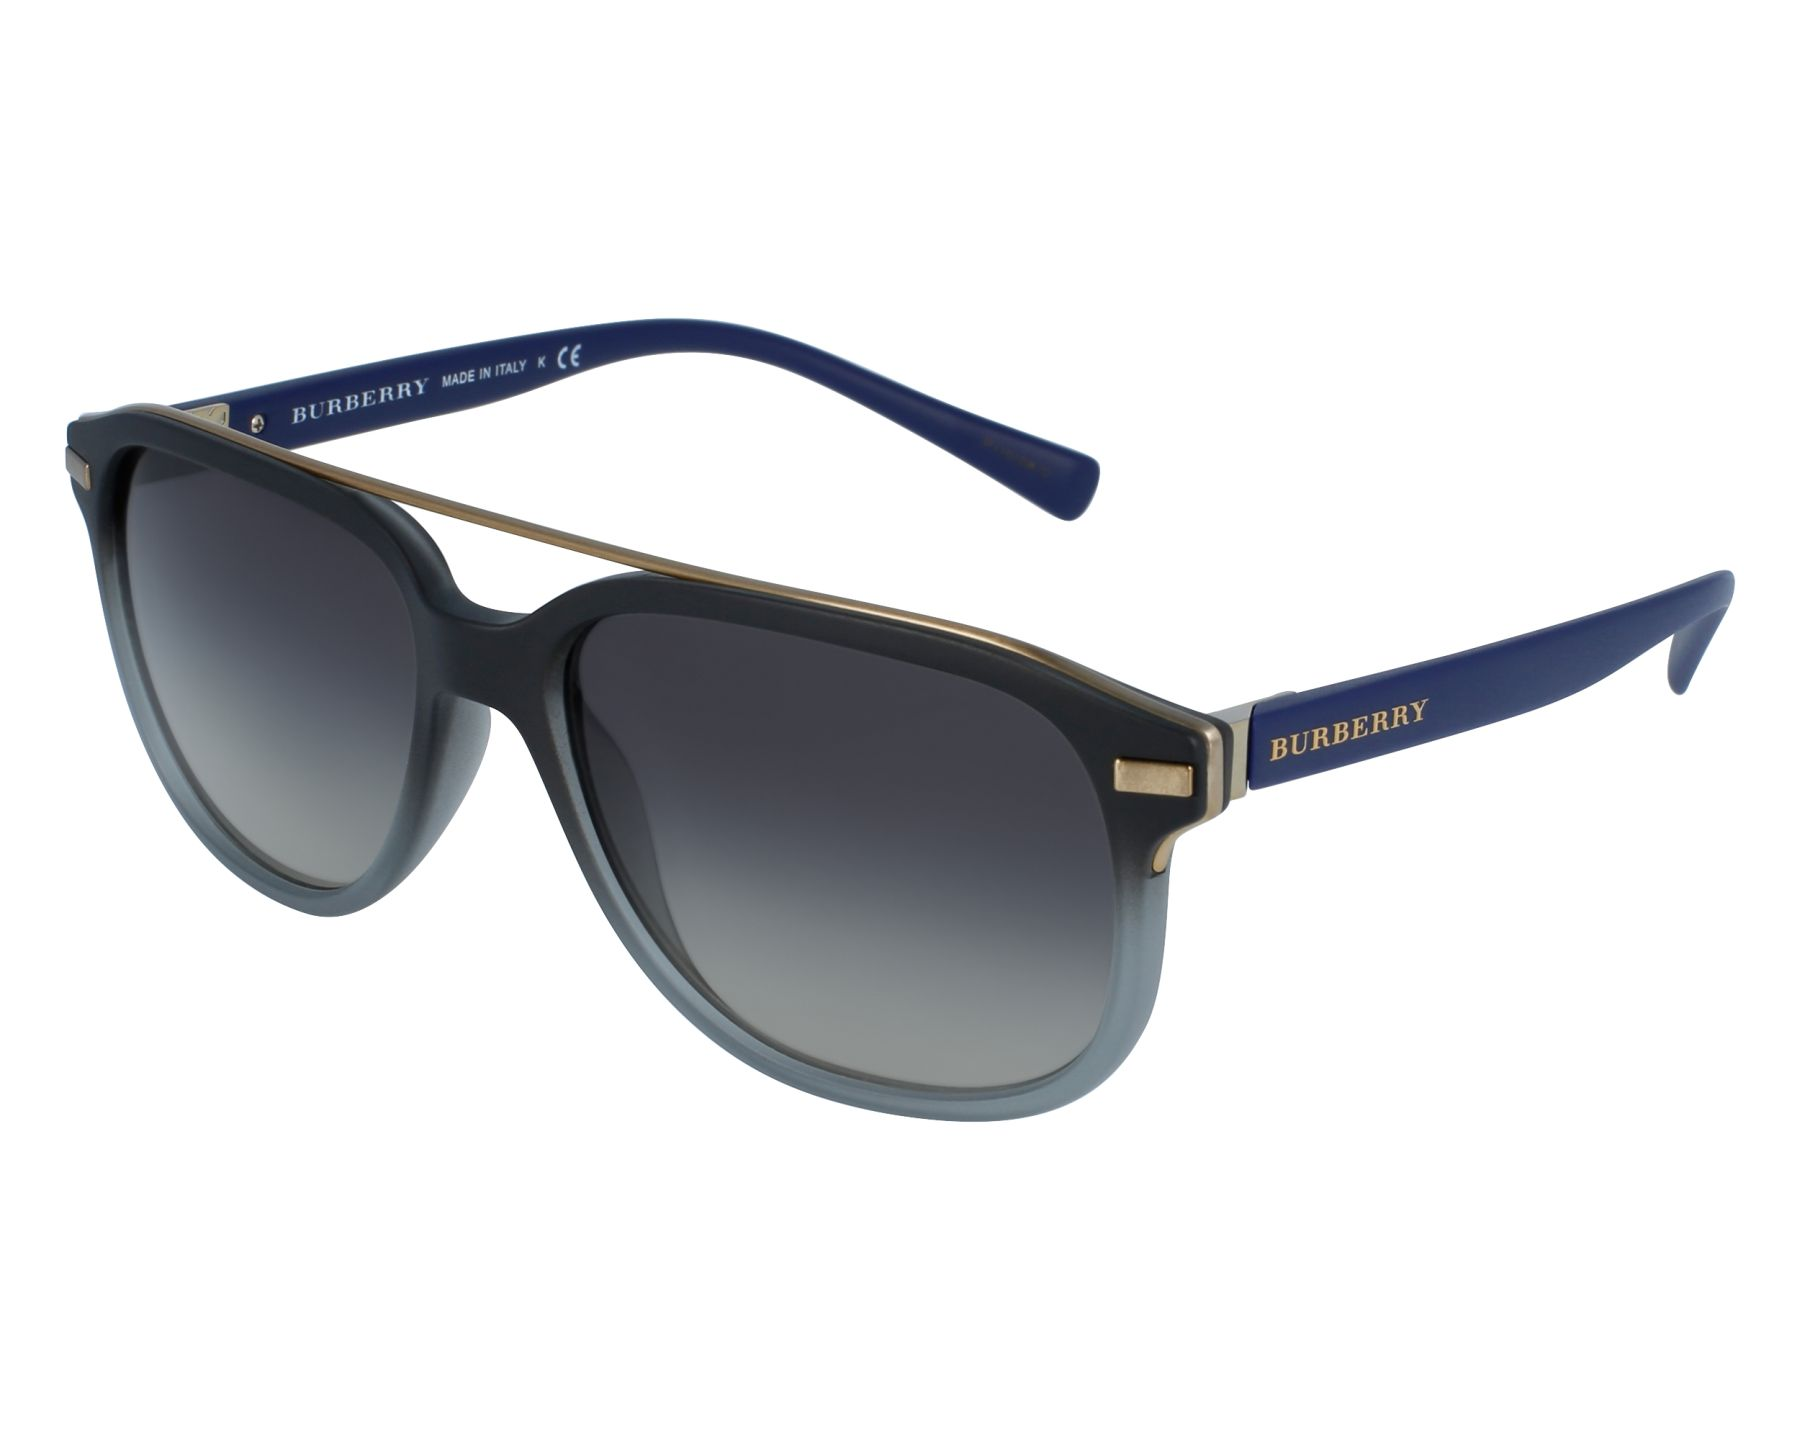 aa43fd9076c Sunglasses Burberry BE-4233 3630 11 - Grey Blue front view